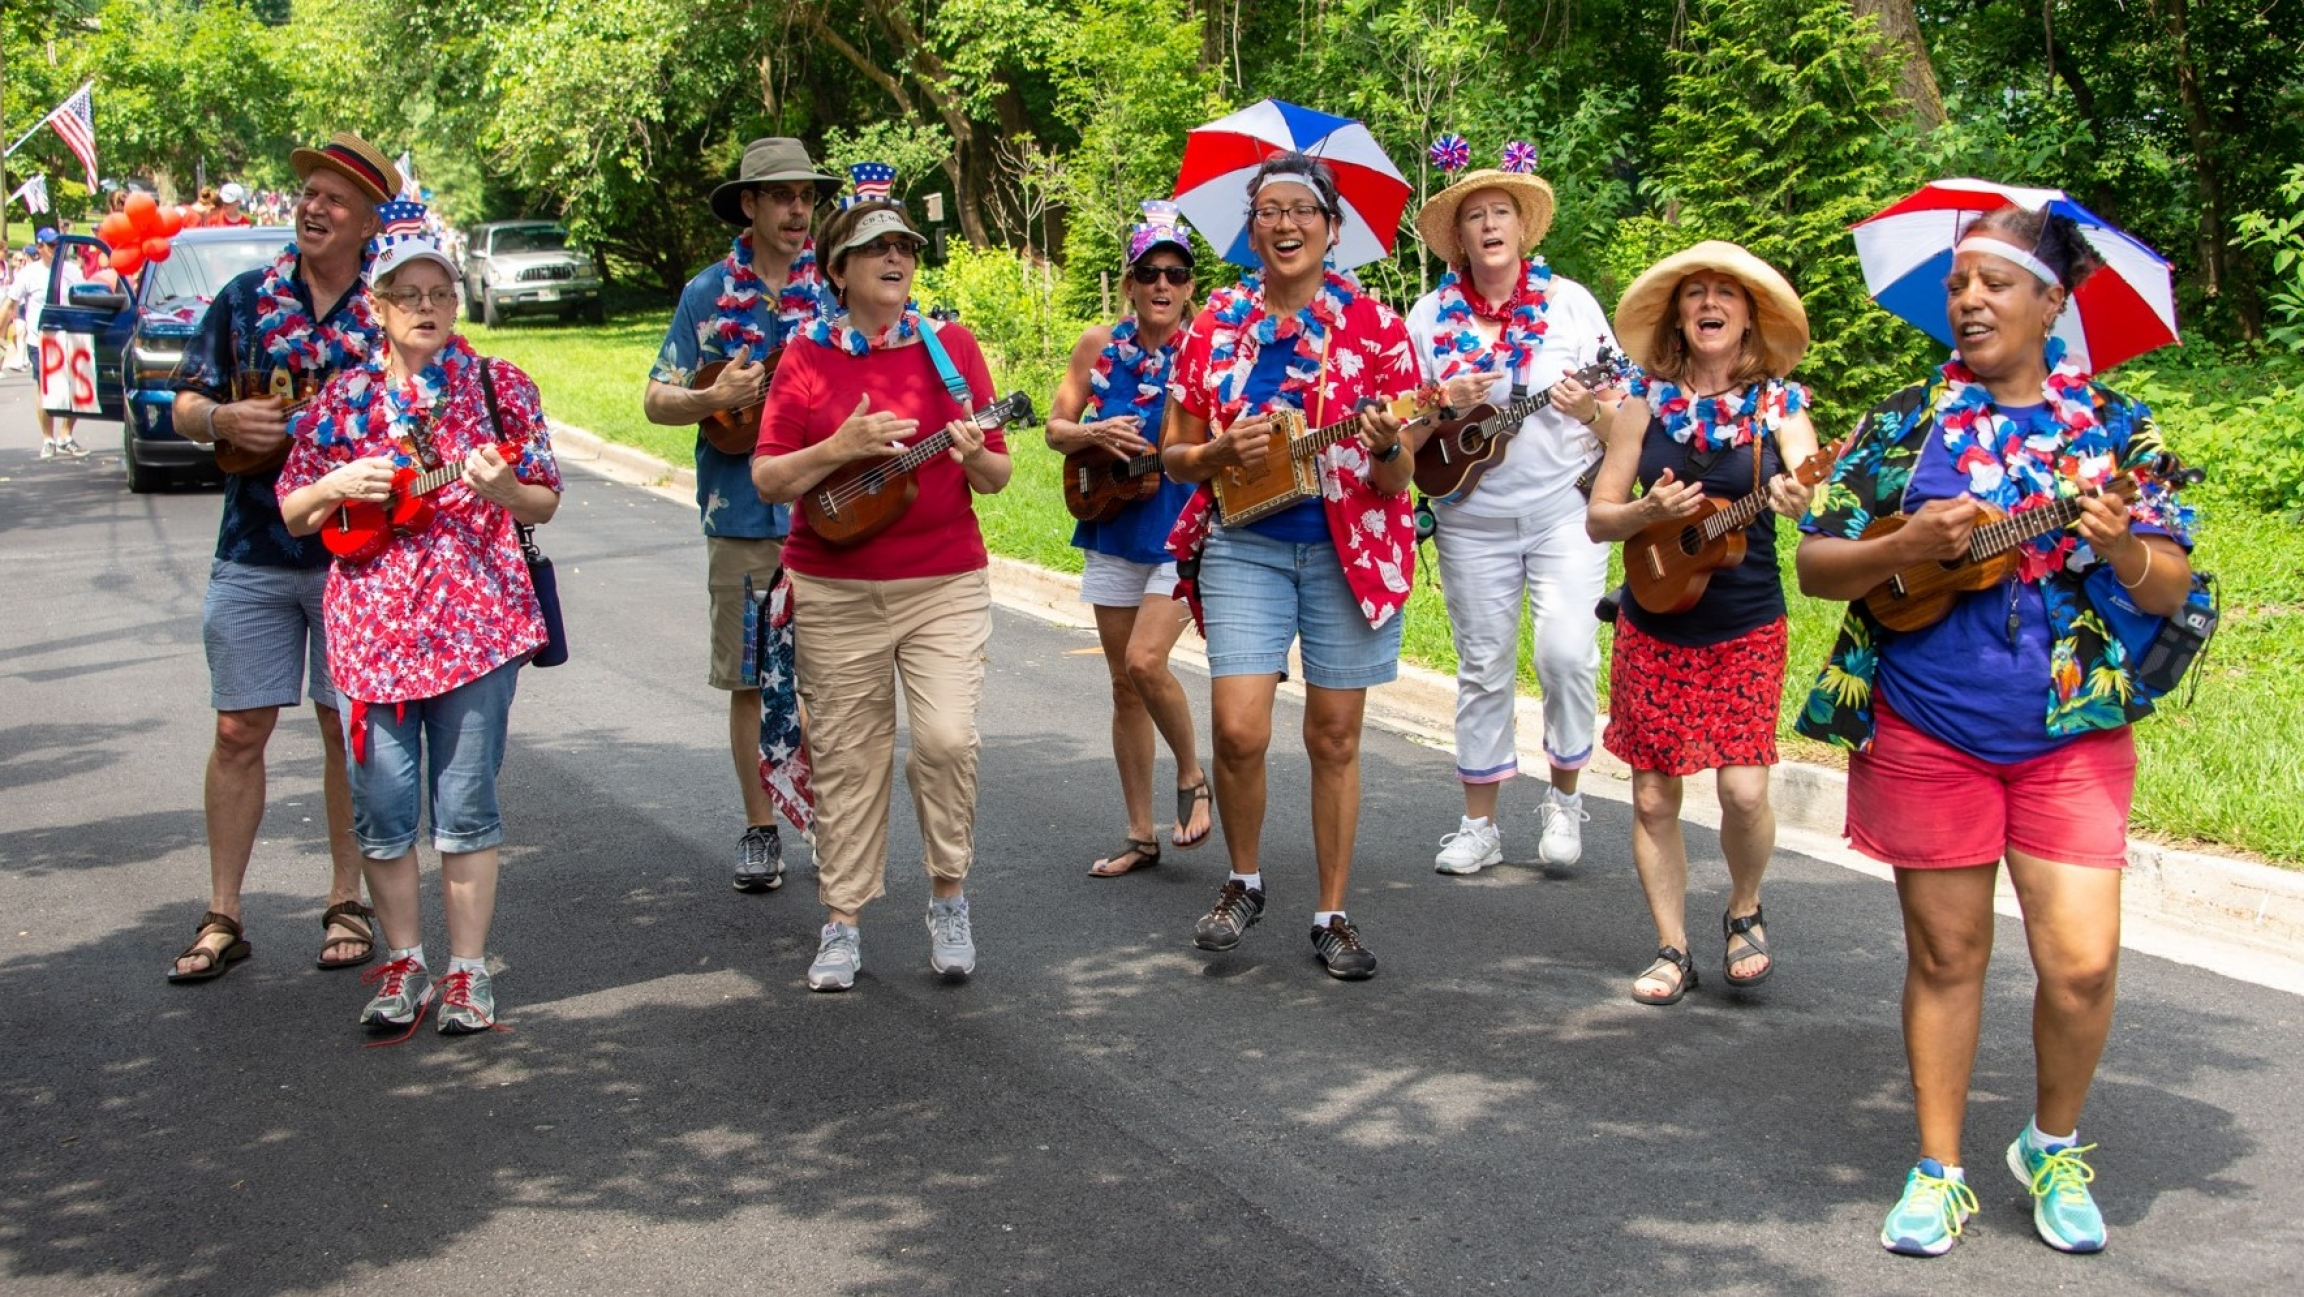 A Maryland-based ukulele marching band performs during a 2019 Fourth of July parade.